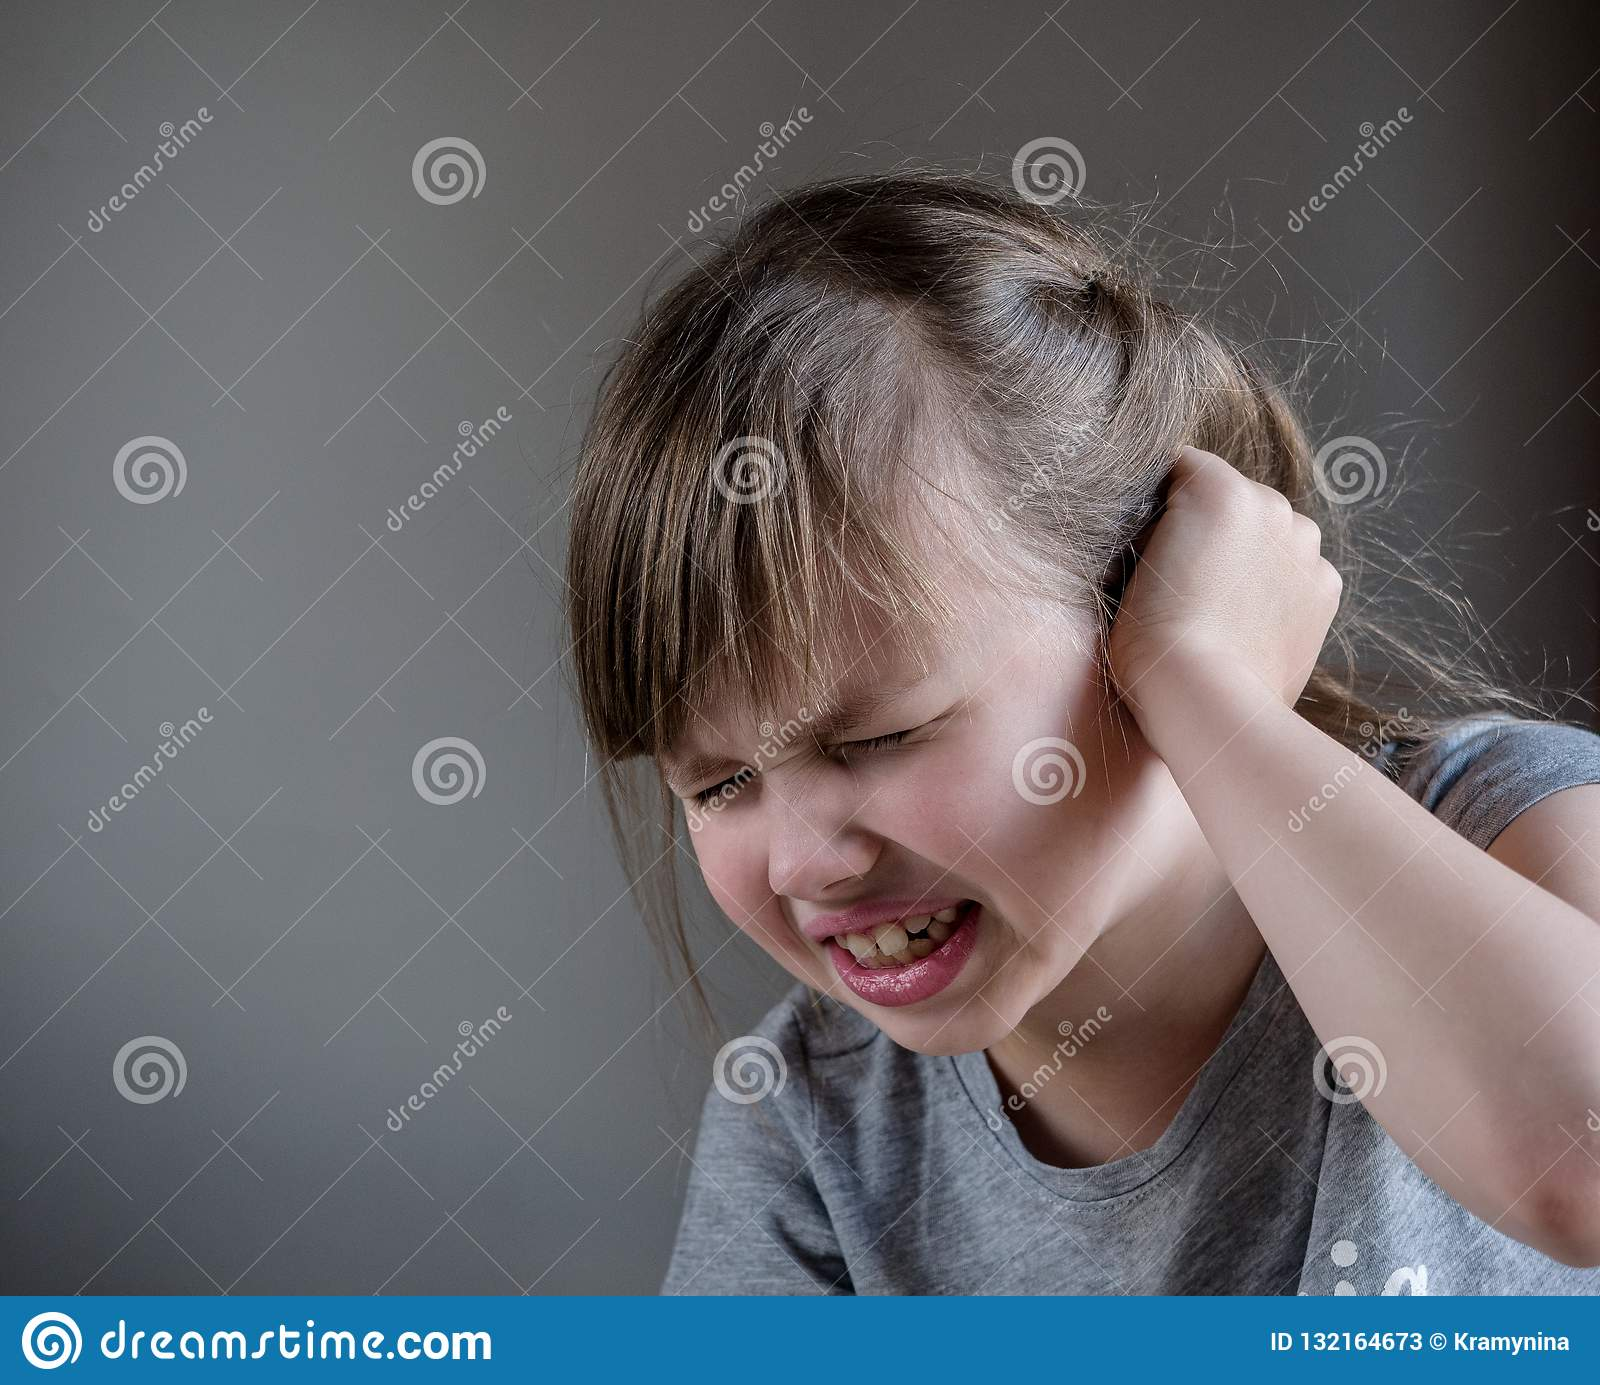 Girl having ear pain touching his painful head isolated on gray background